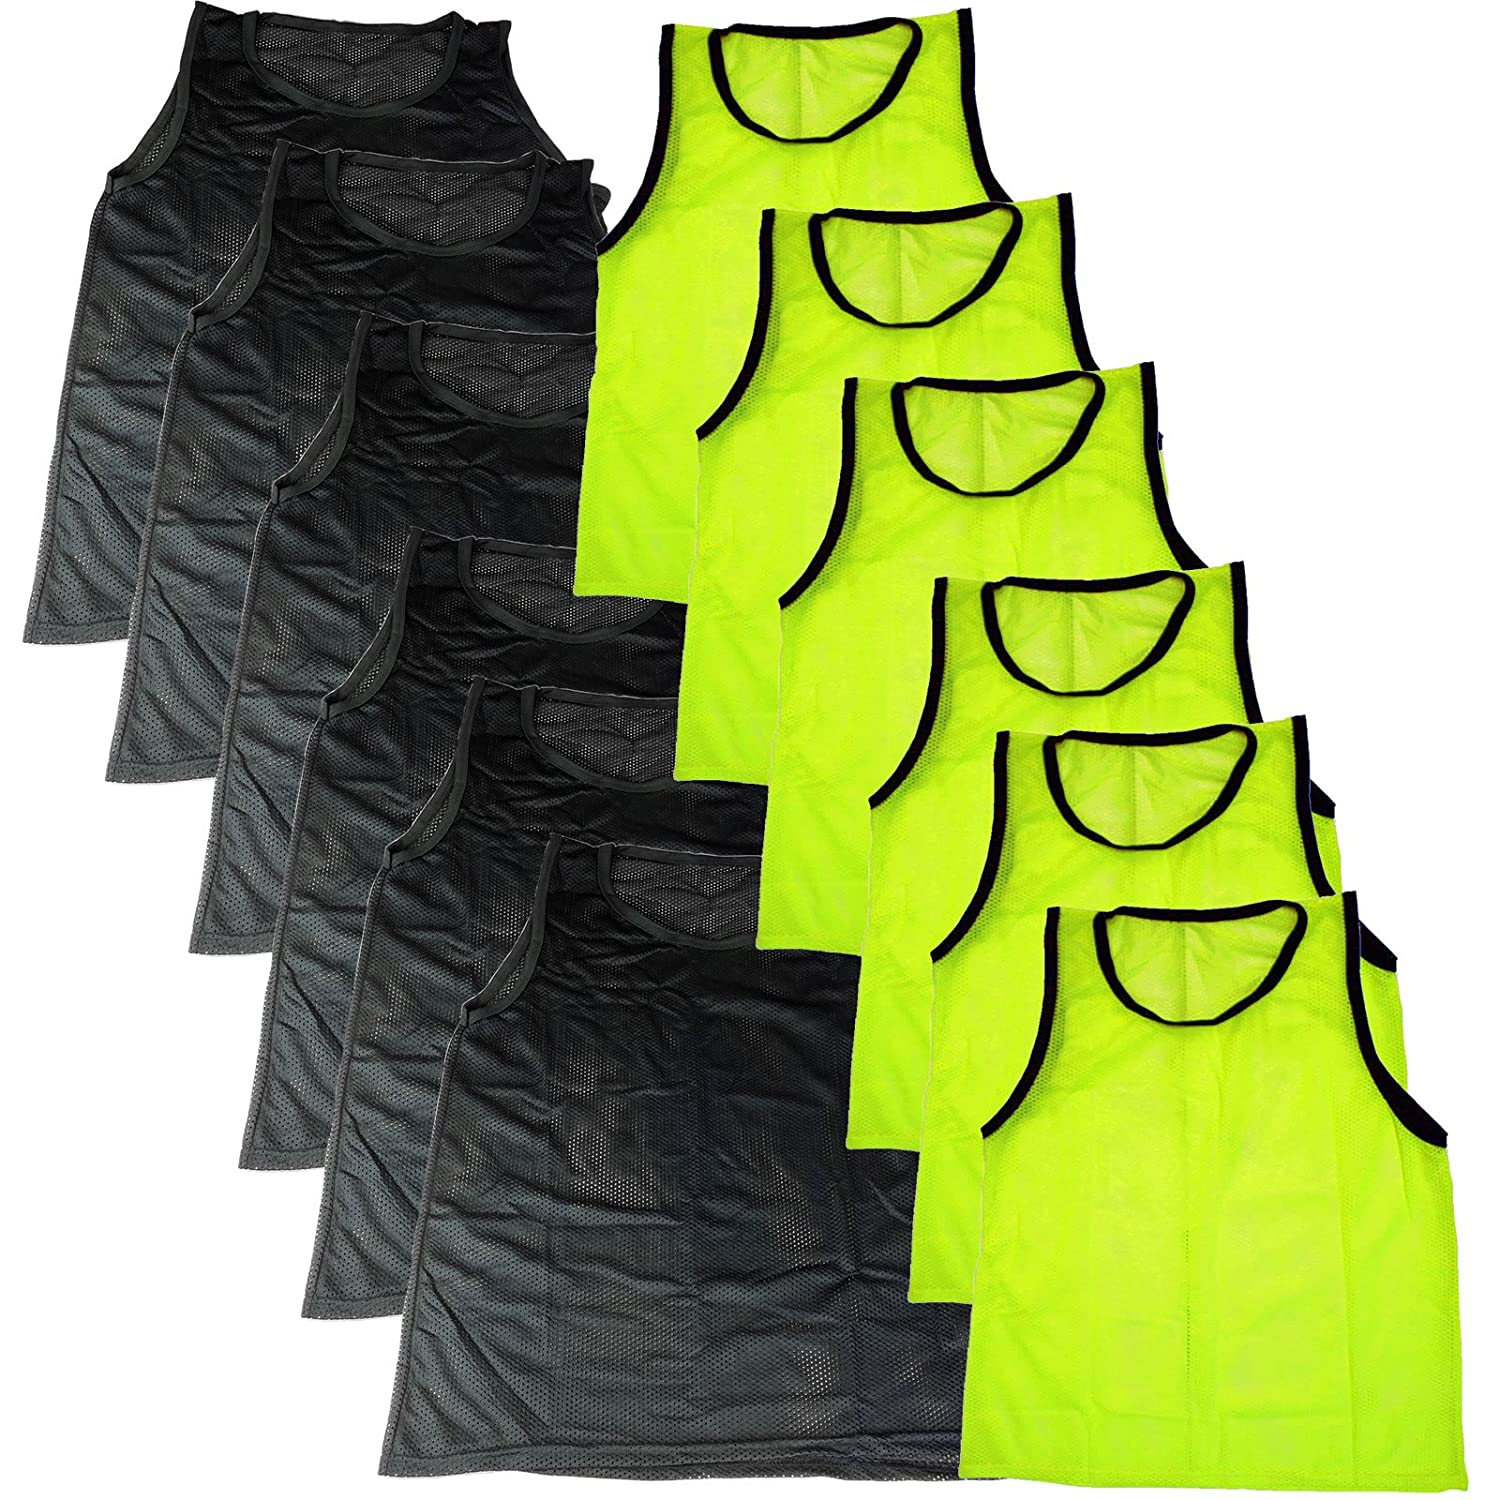 Blue Dot Trading 12 Youth Soccer Training Vests/Pinnies, Yellow & Black